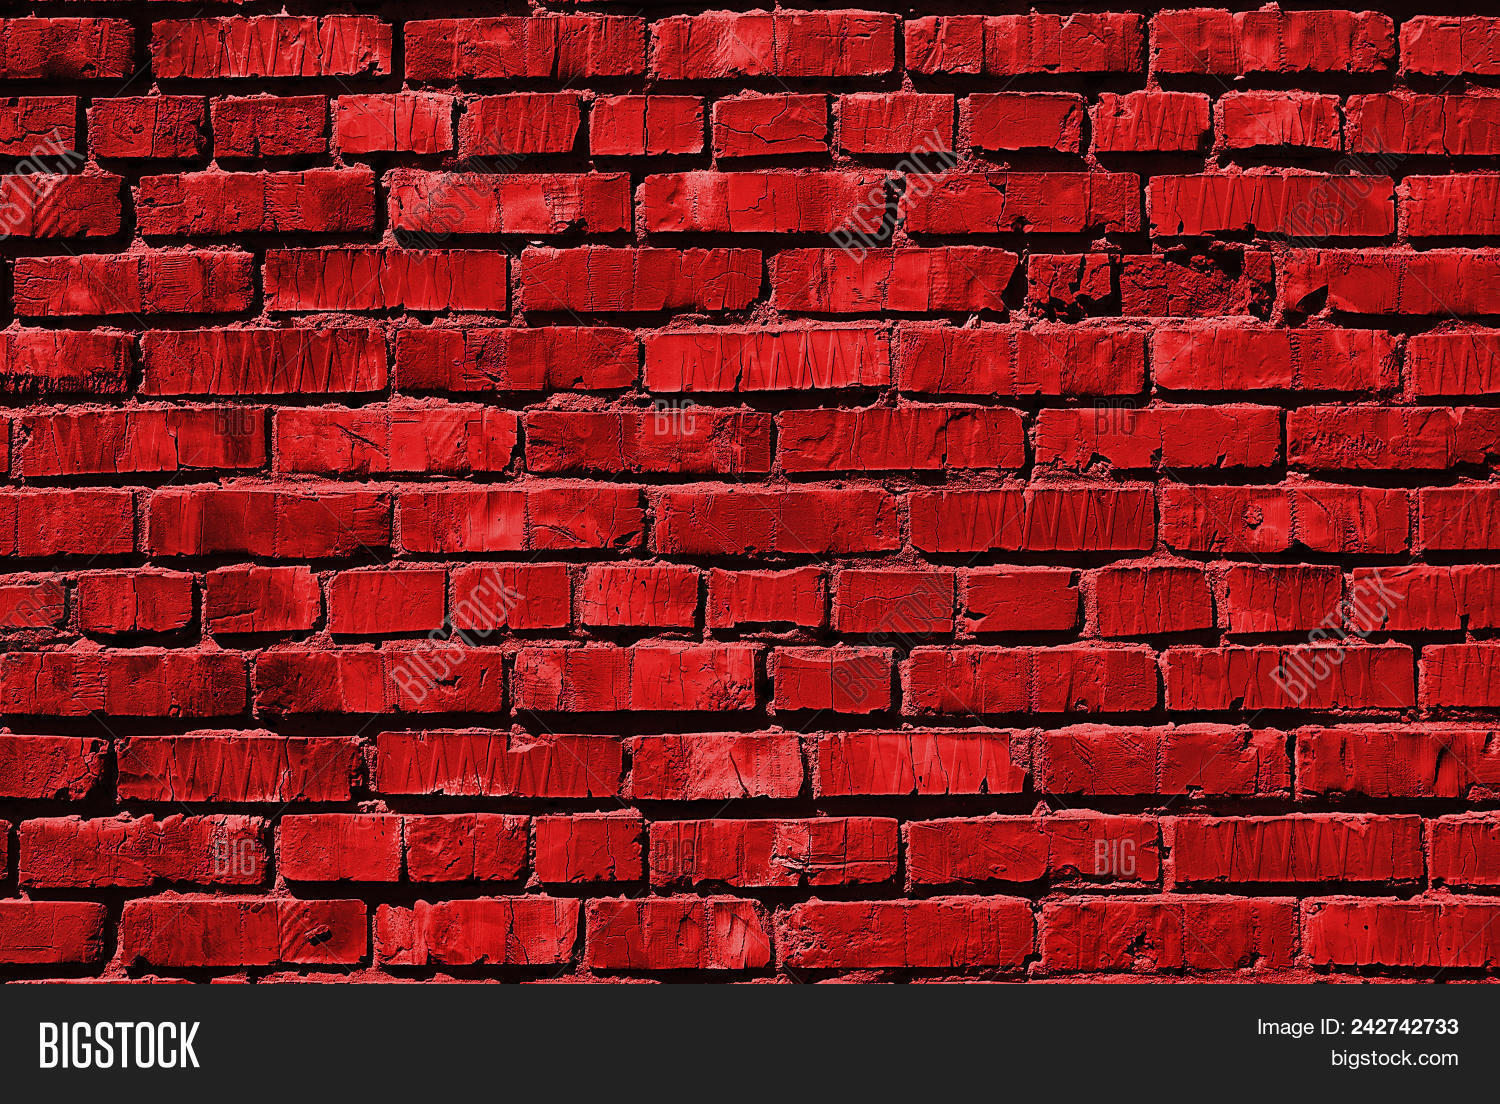 Red Brick Wall Red Image Photo Free Trial Bigstock